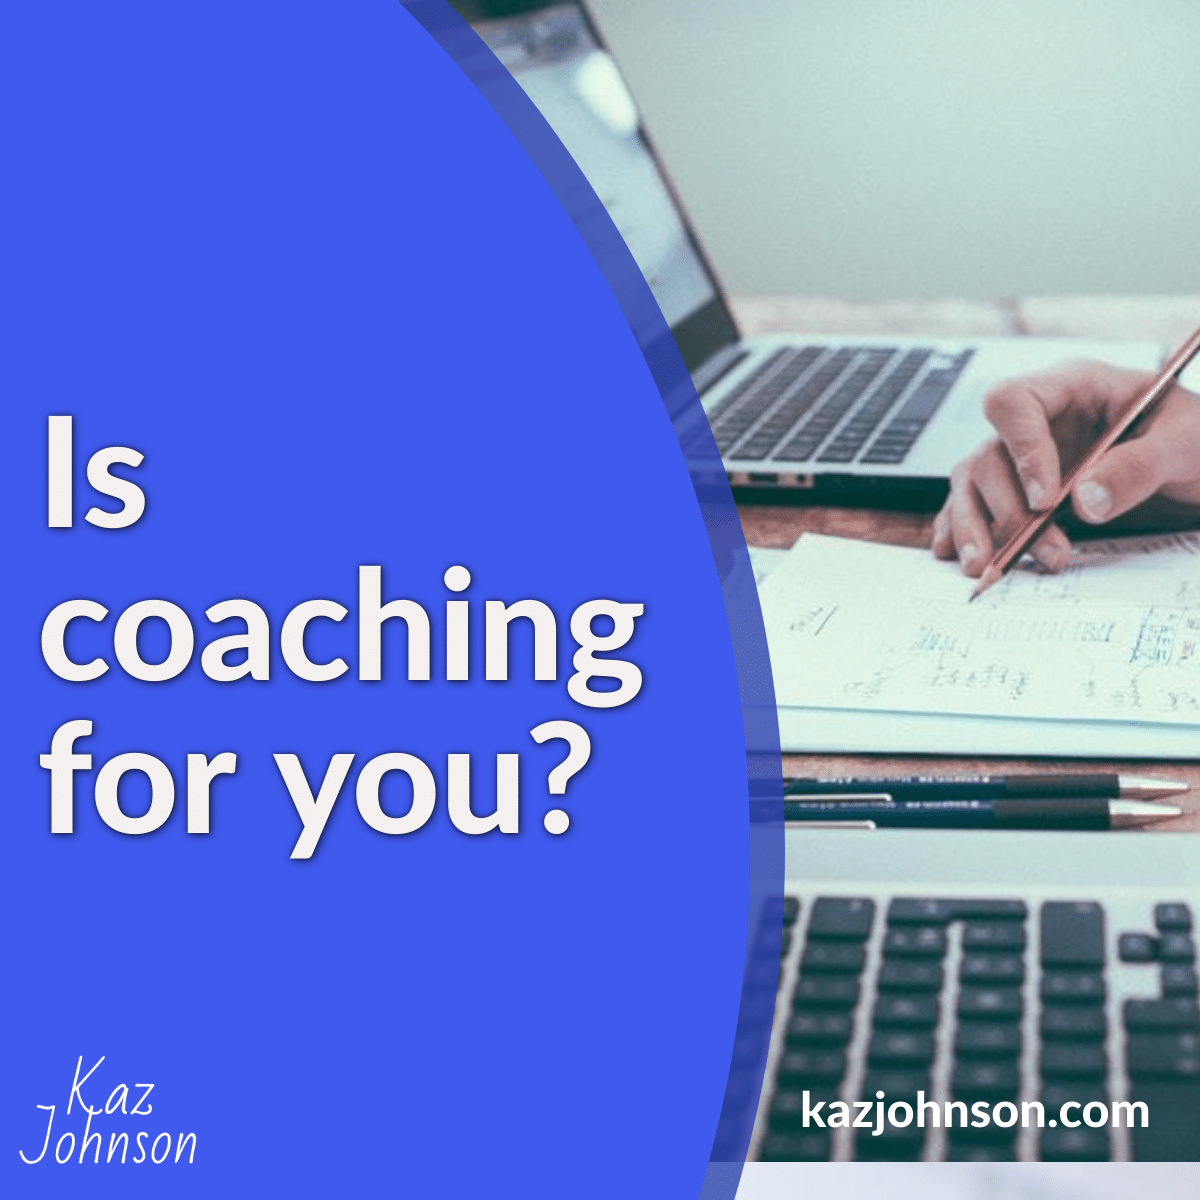 is coaching for you?